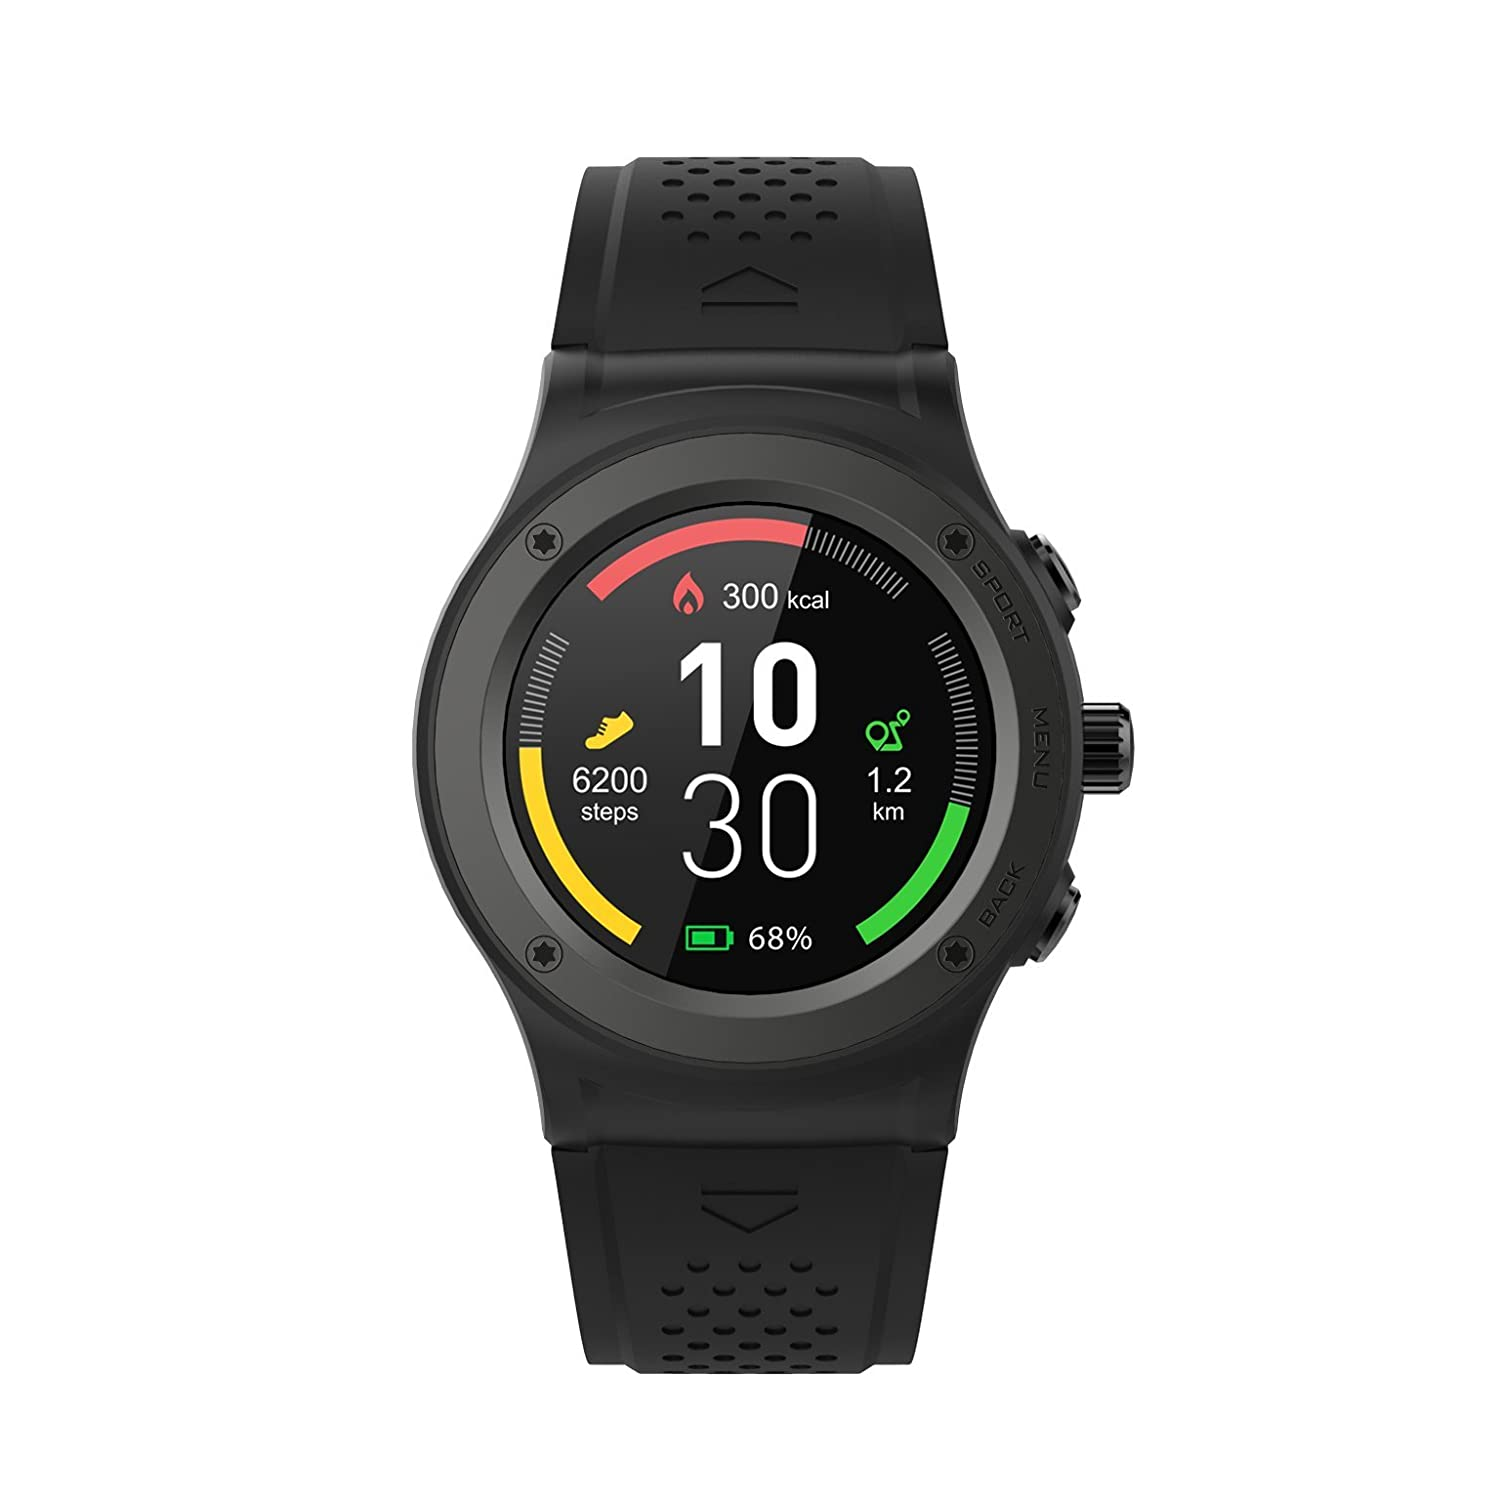 Prixton SWB35 - Smartwatch con GPS, Bluetooth y notificaciones, Color Negro: Prixton: Amazon.es: Electrónica